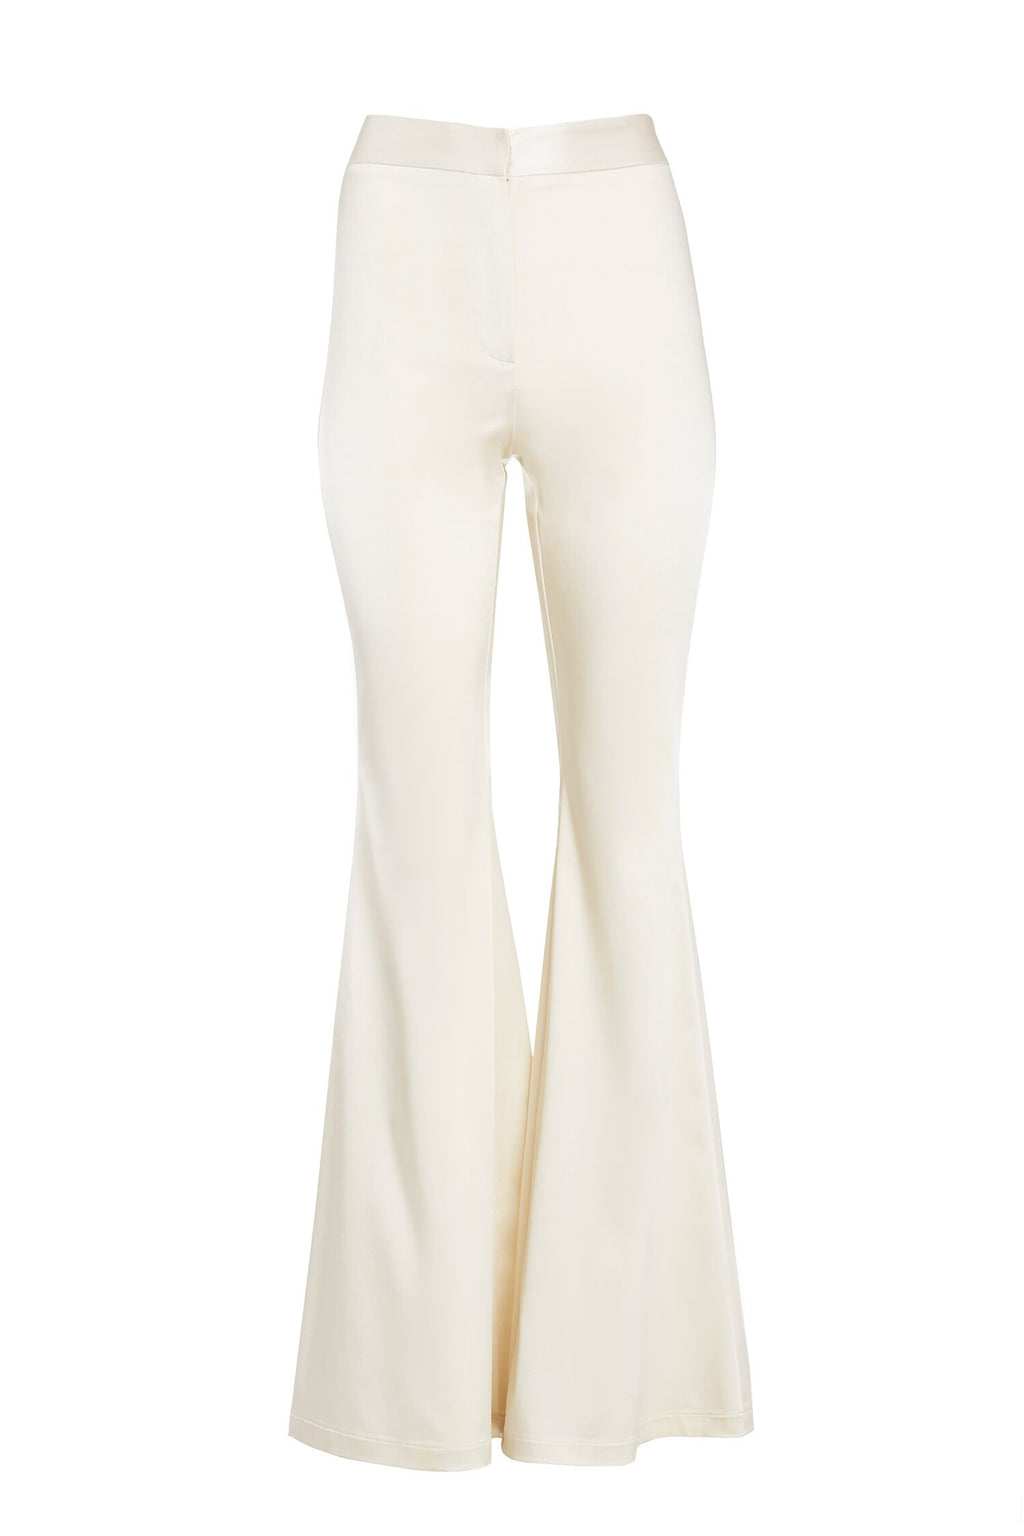 PRE-ORDER Satin Flared Pant